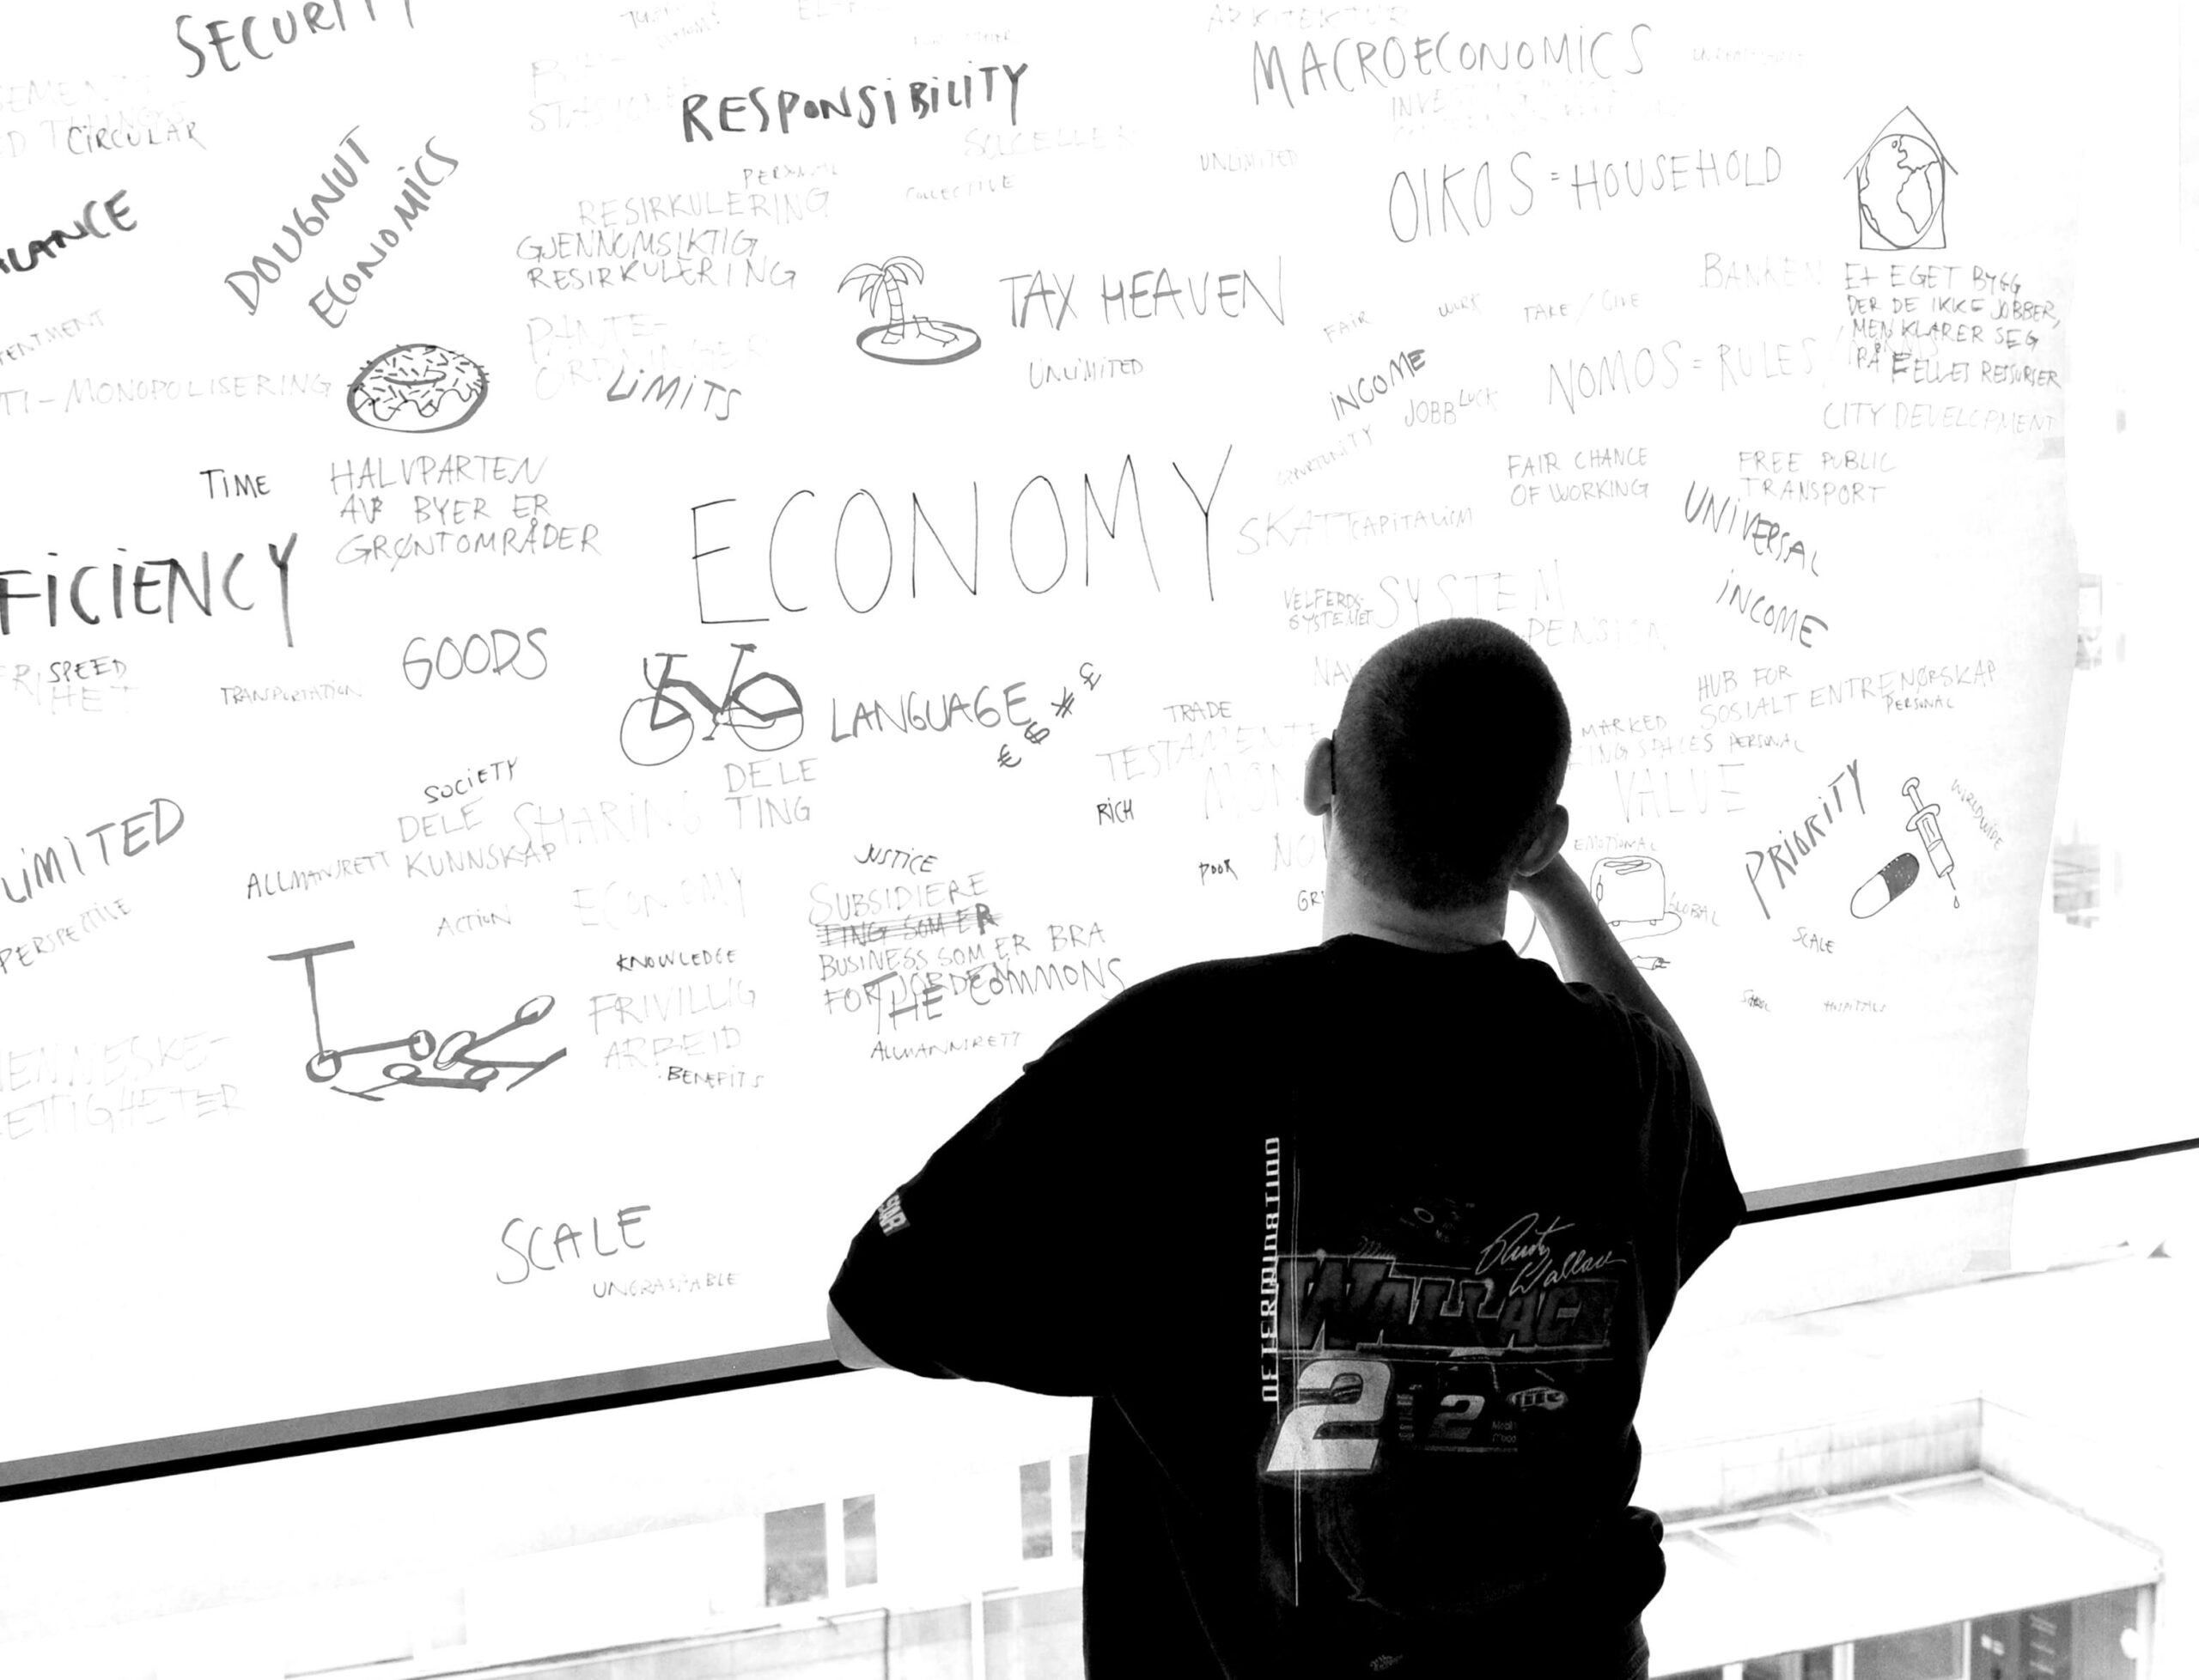 Me in front of a wall with words related to economy.